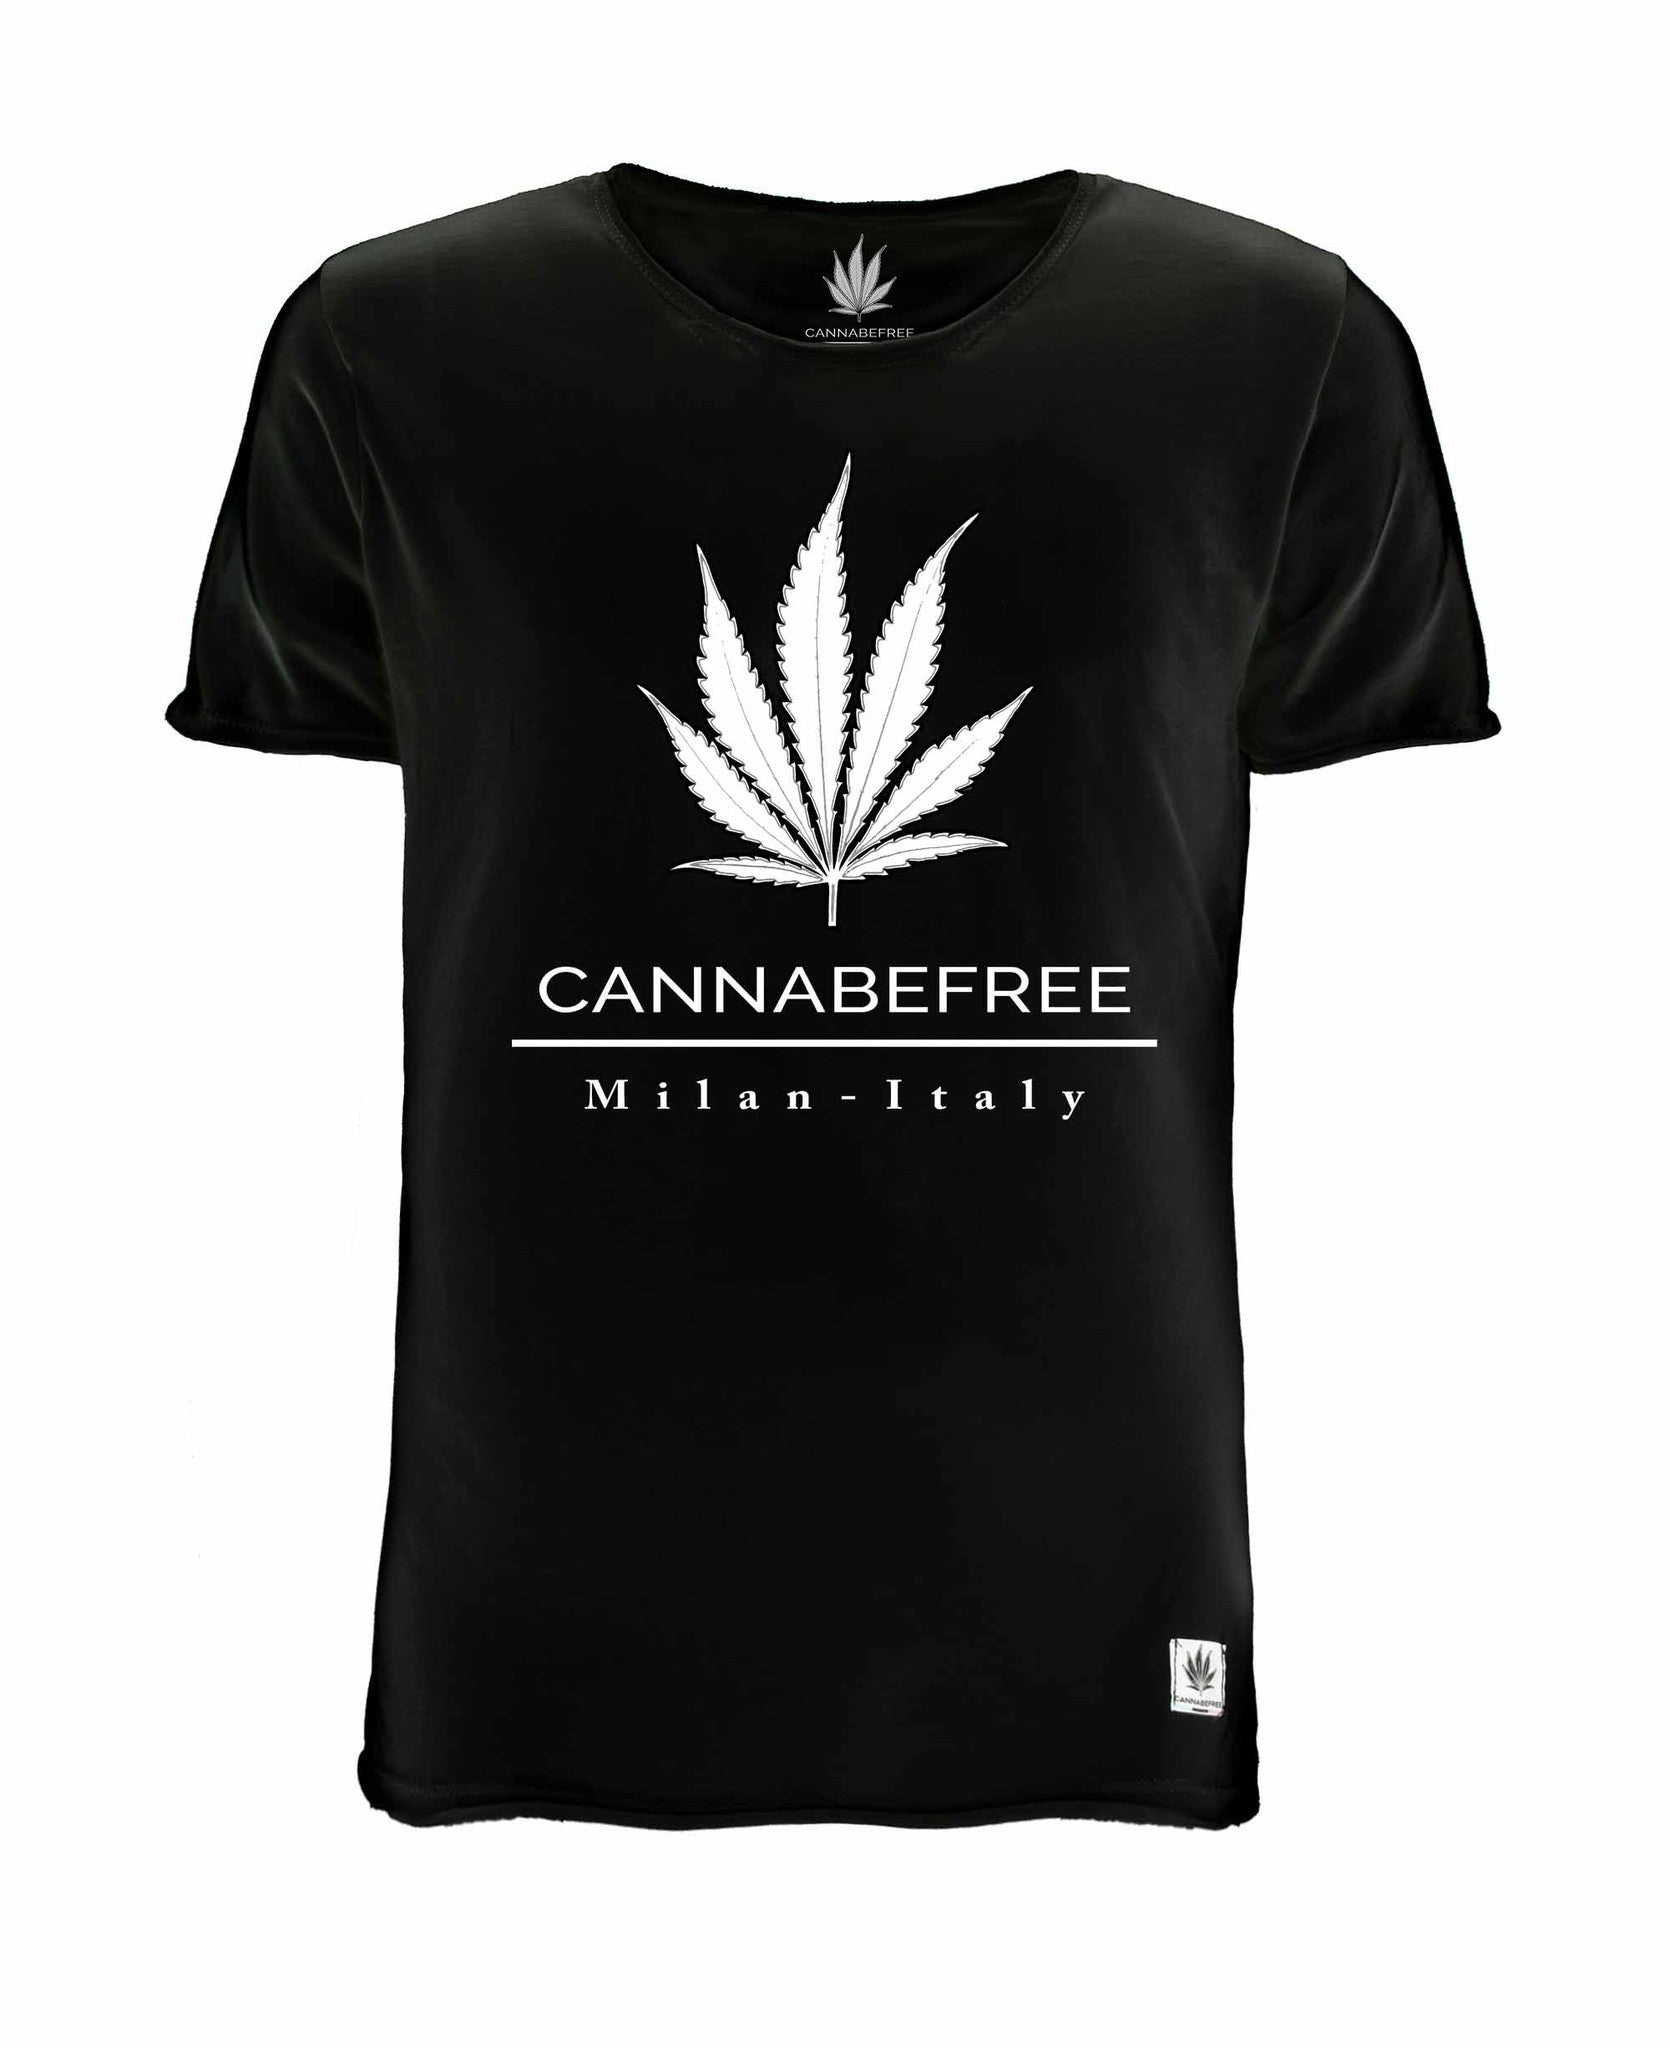 CANNABEFREE LOGO BLACK T-SHIRT